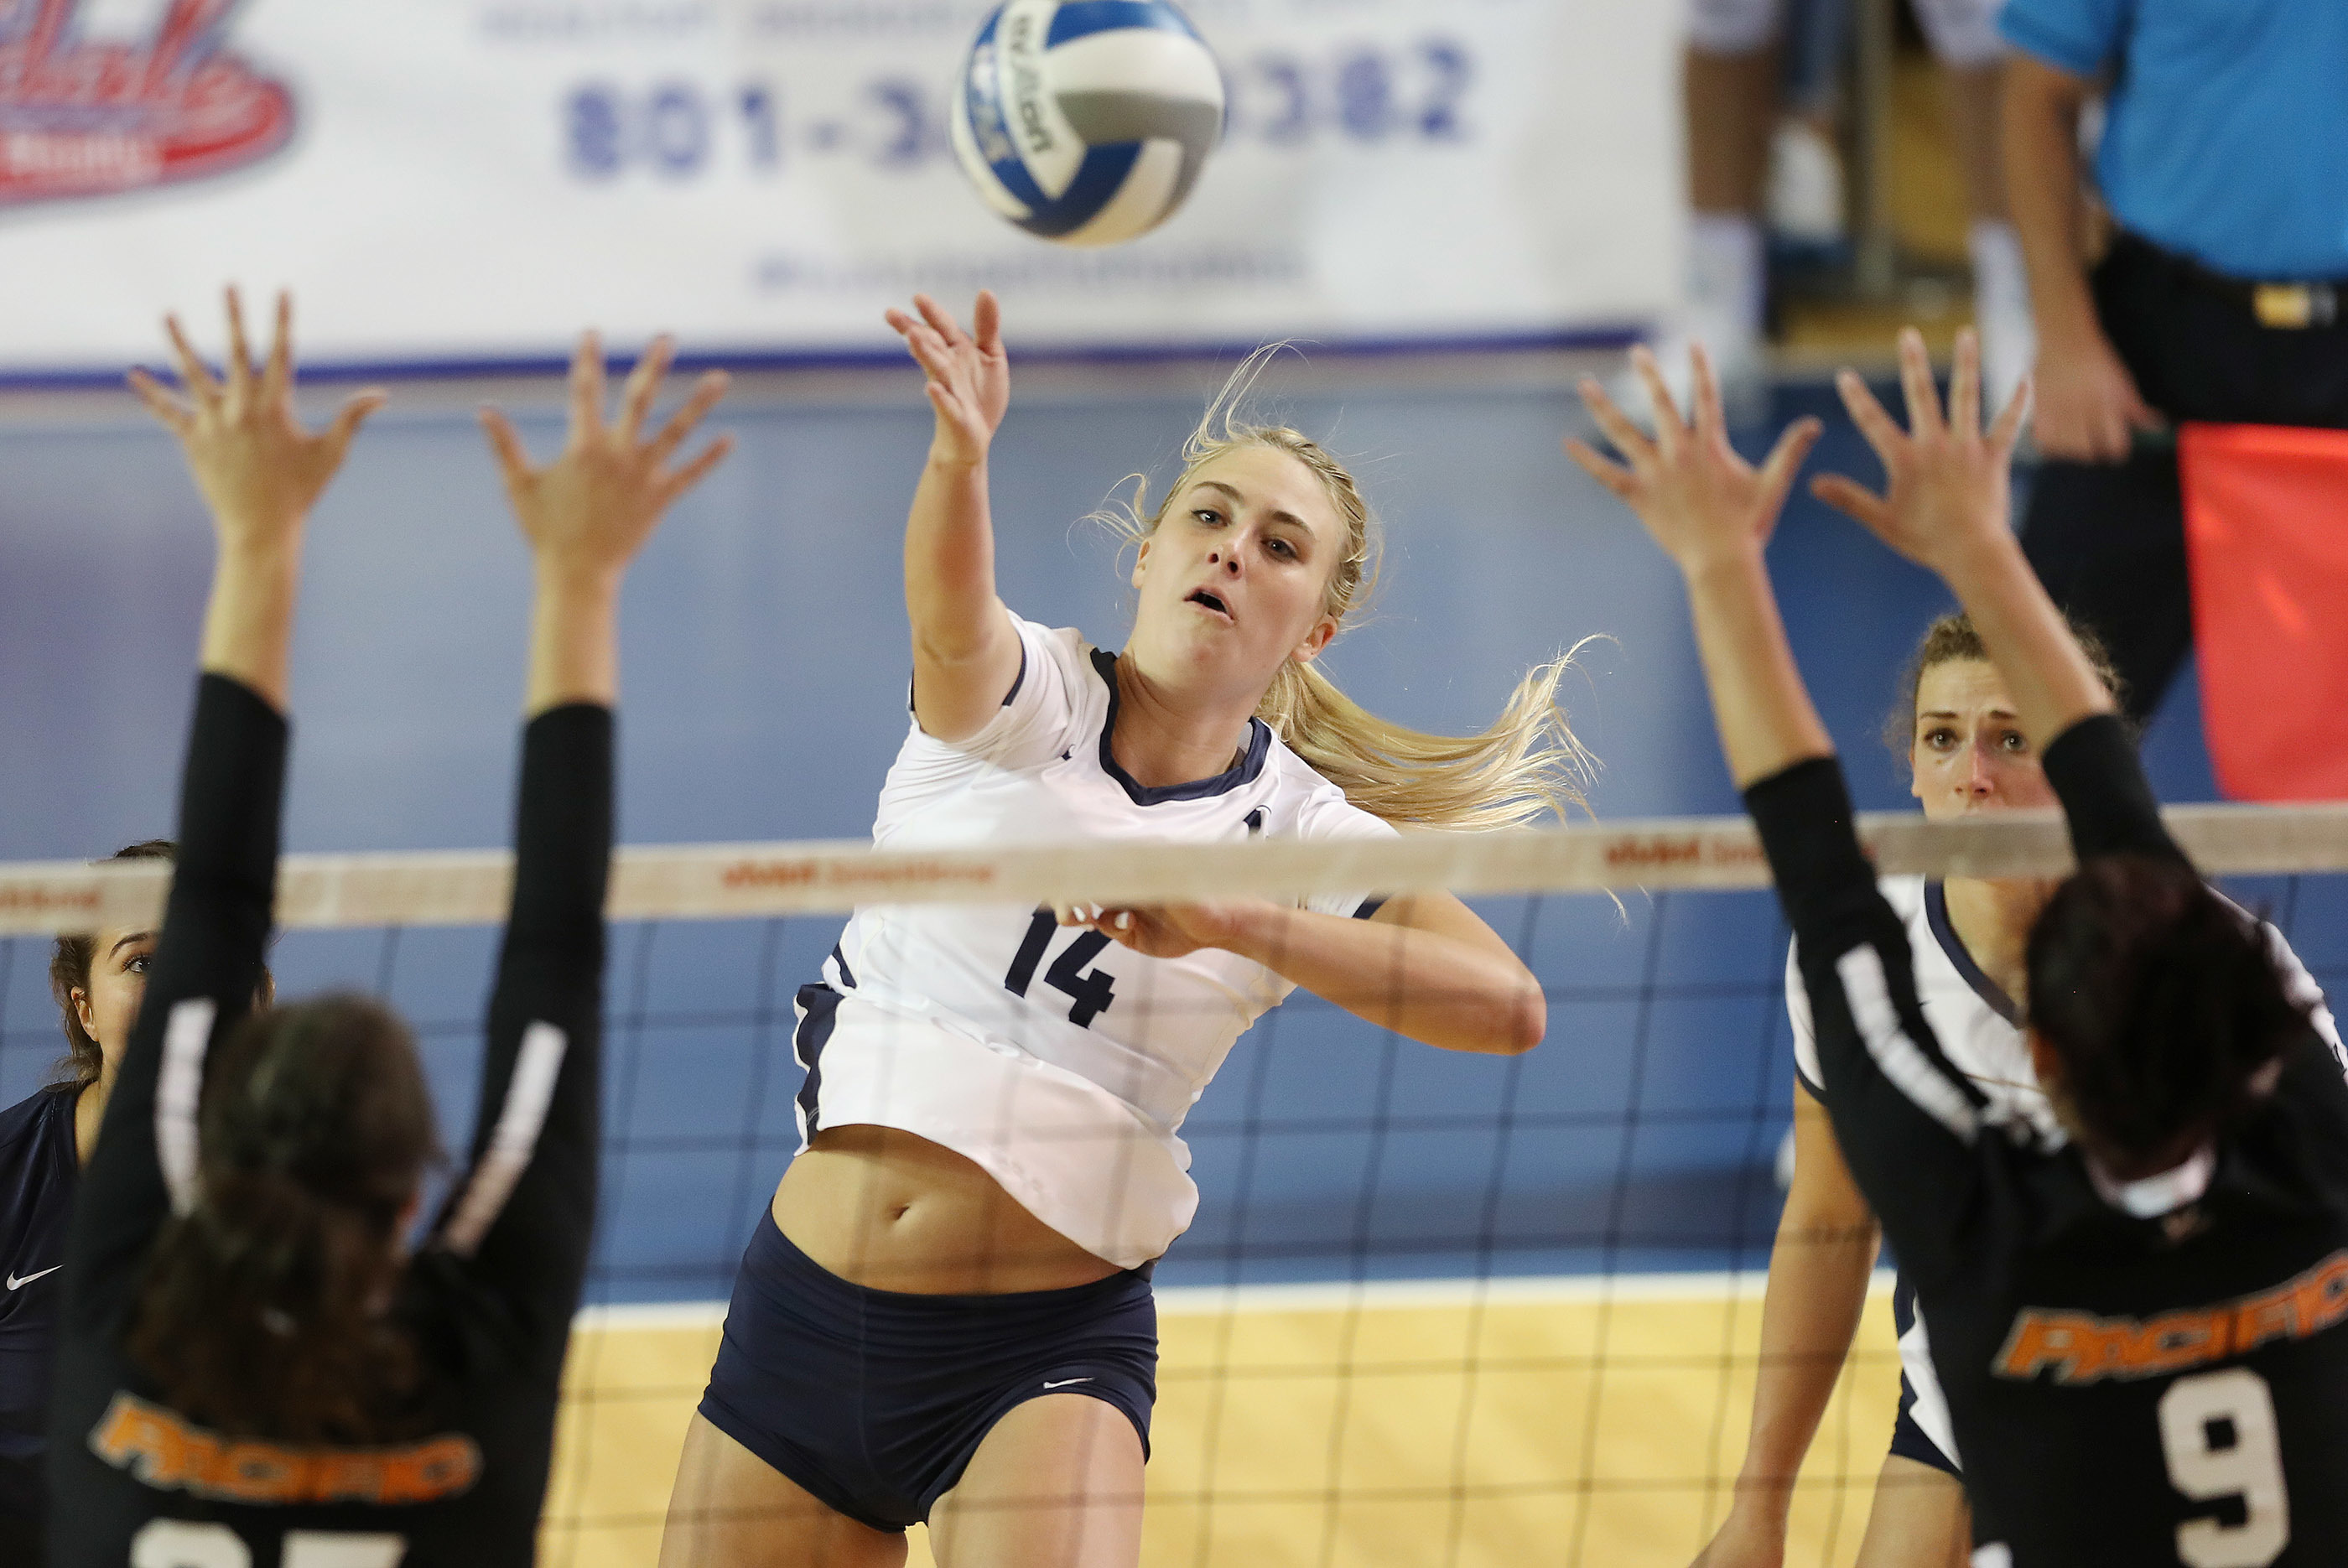 BYU's McKenna Miller hits against Pacific in Provo on Thursday, Sept. 20, 2018. BYU won 3-0.